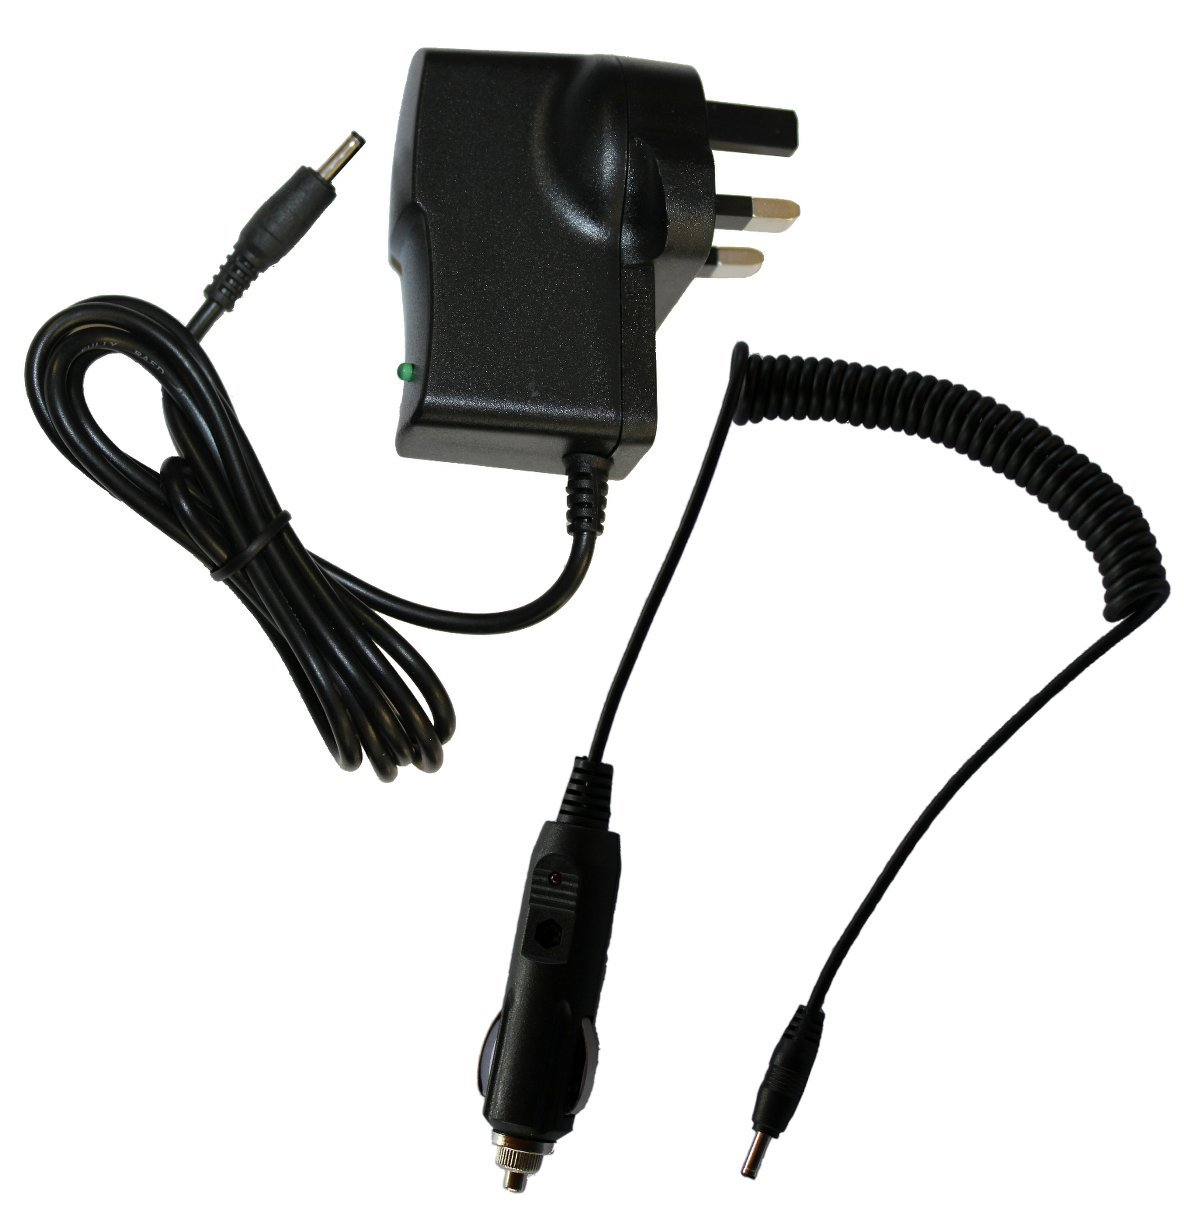 1ah Replacement mains charger for paslode 12V